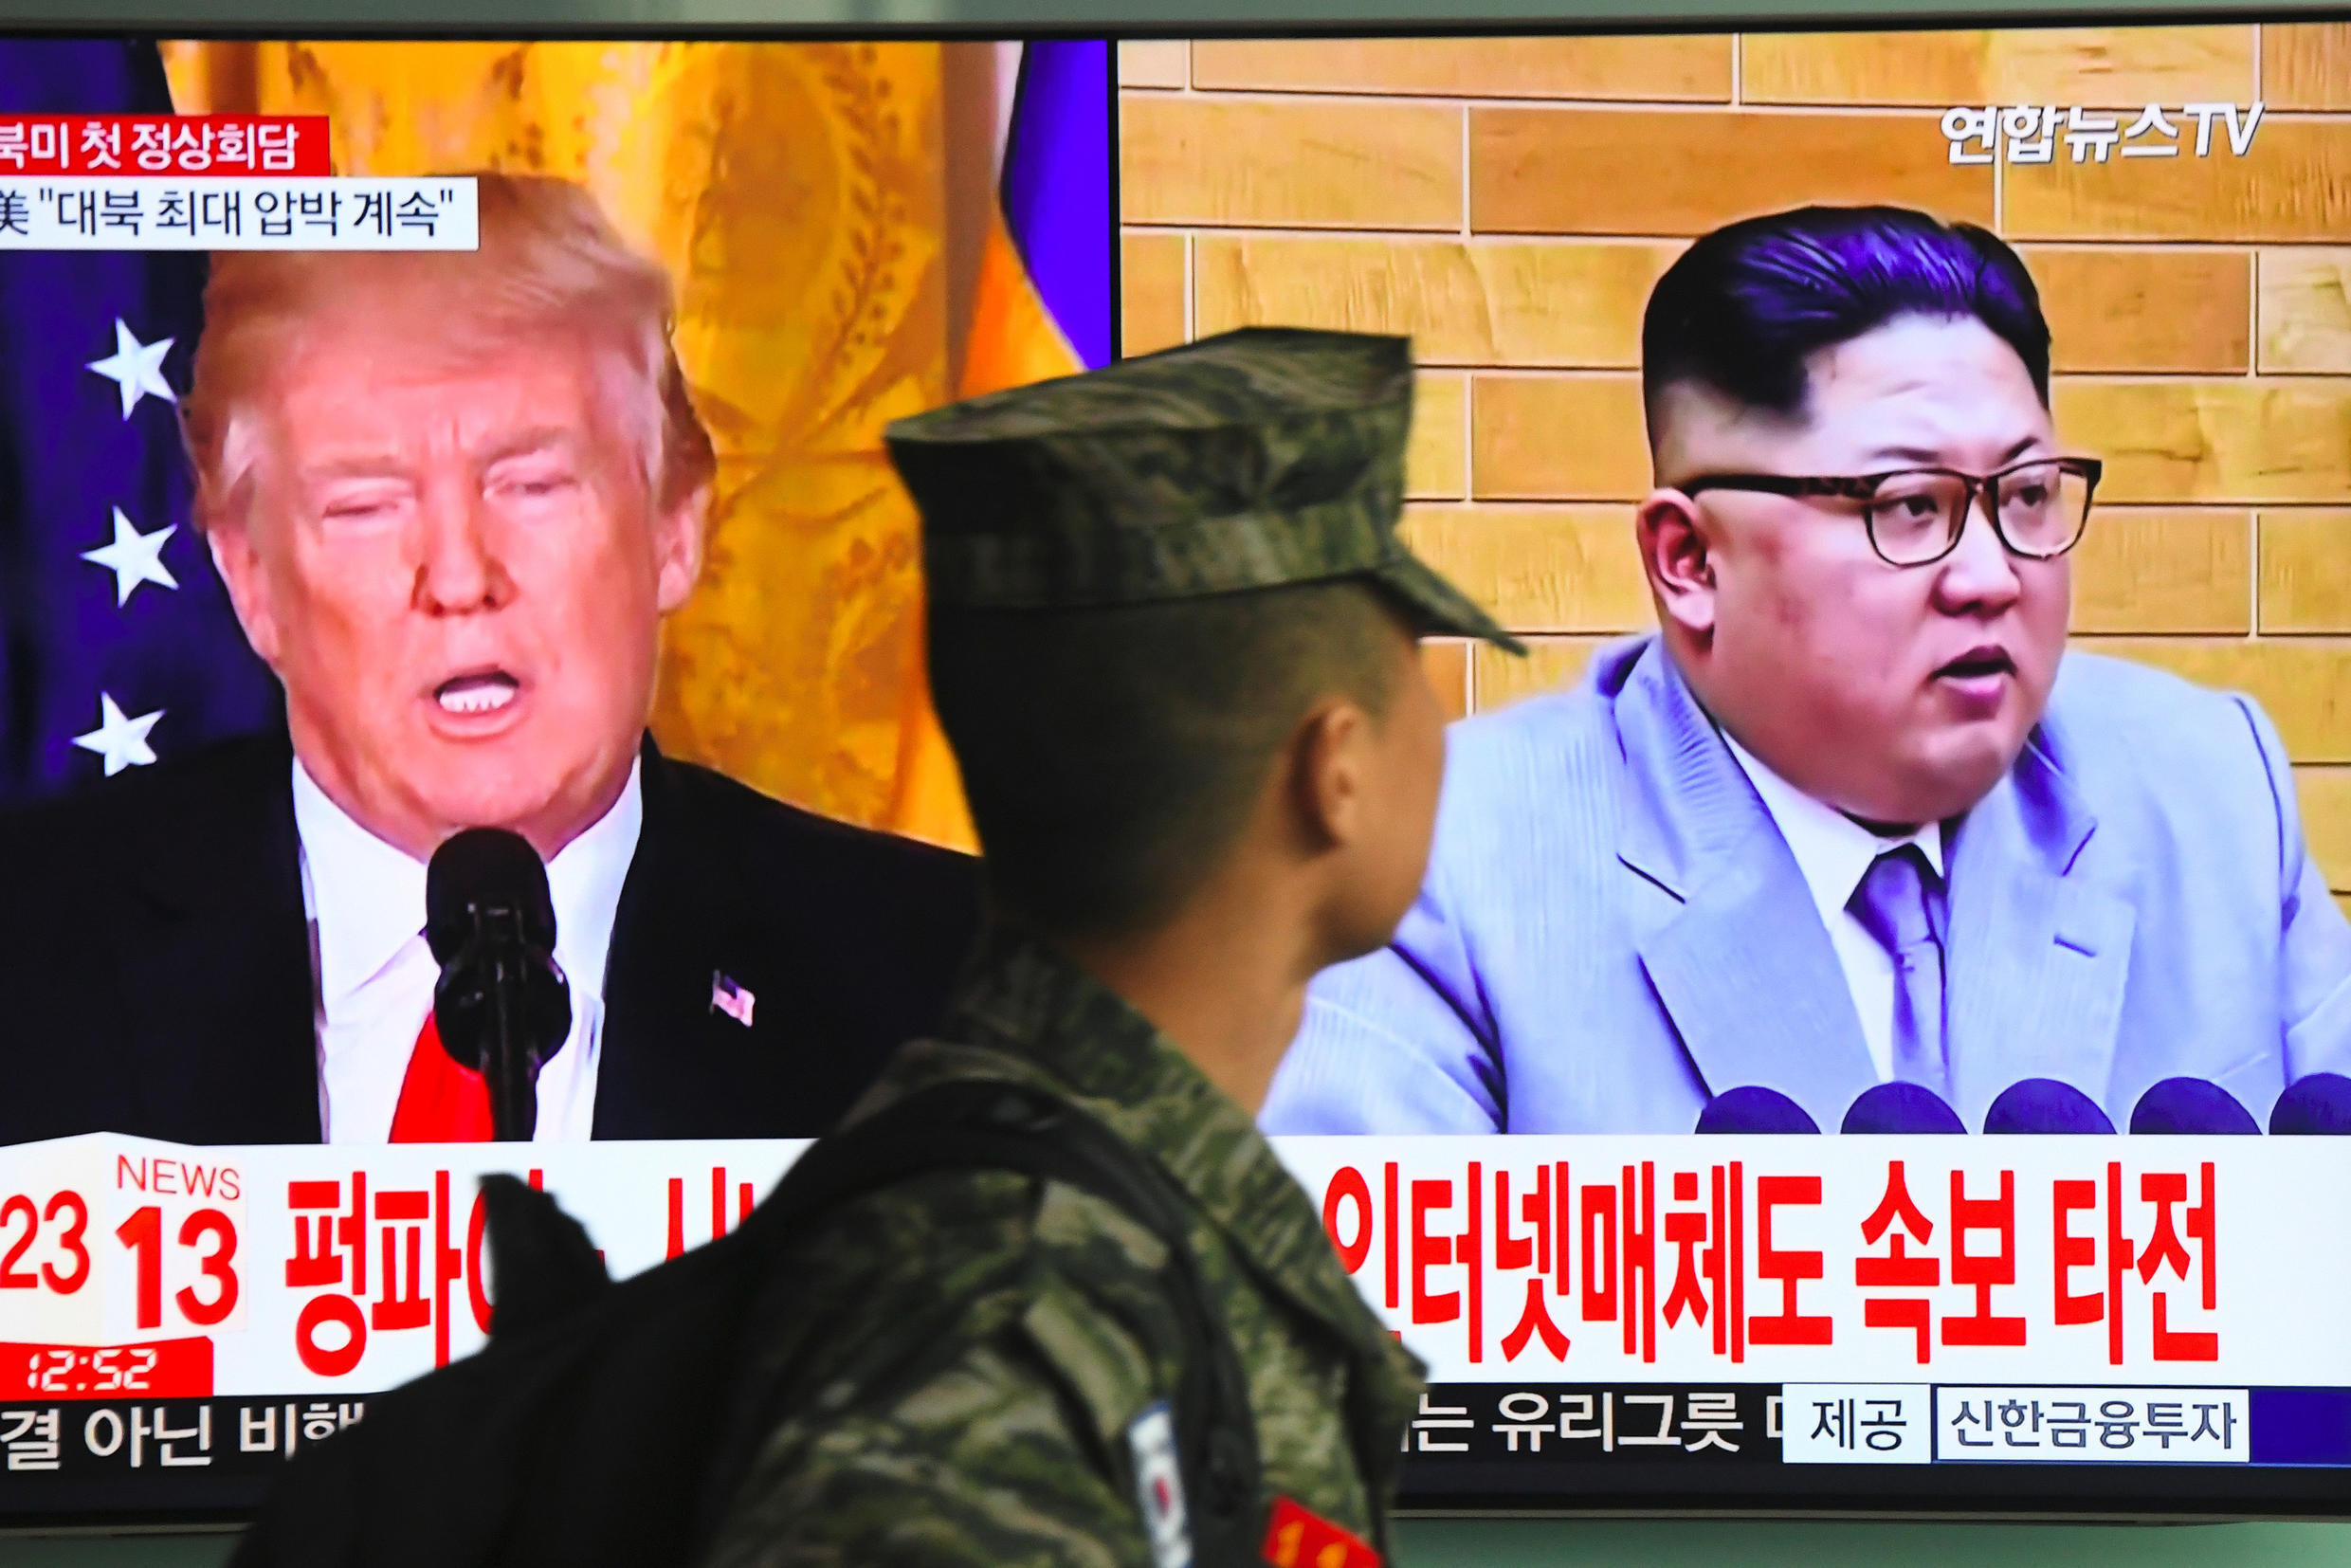 A South Korean soldier walks past a television screen showing pictures of US President Donald Trump (L) and North Korean leader Kim Jong Un at a railway station in Seoul on March 9, 2018. U